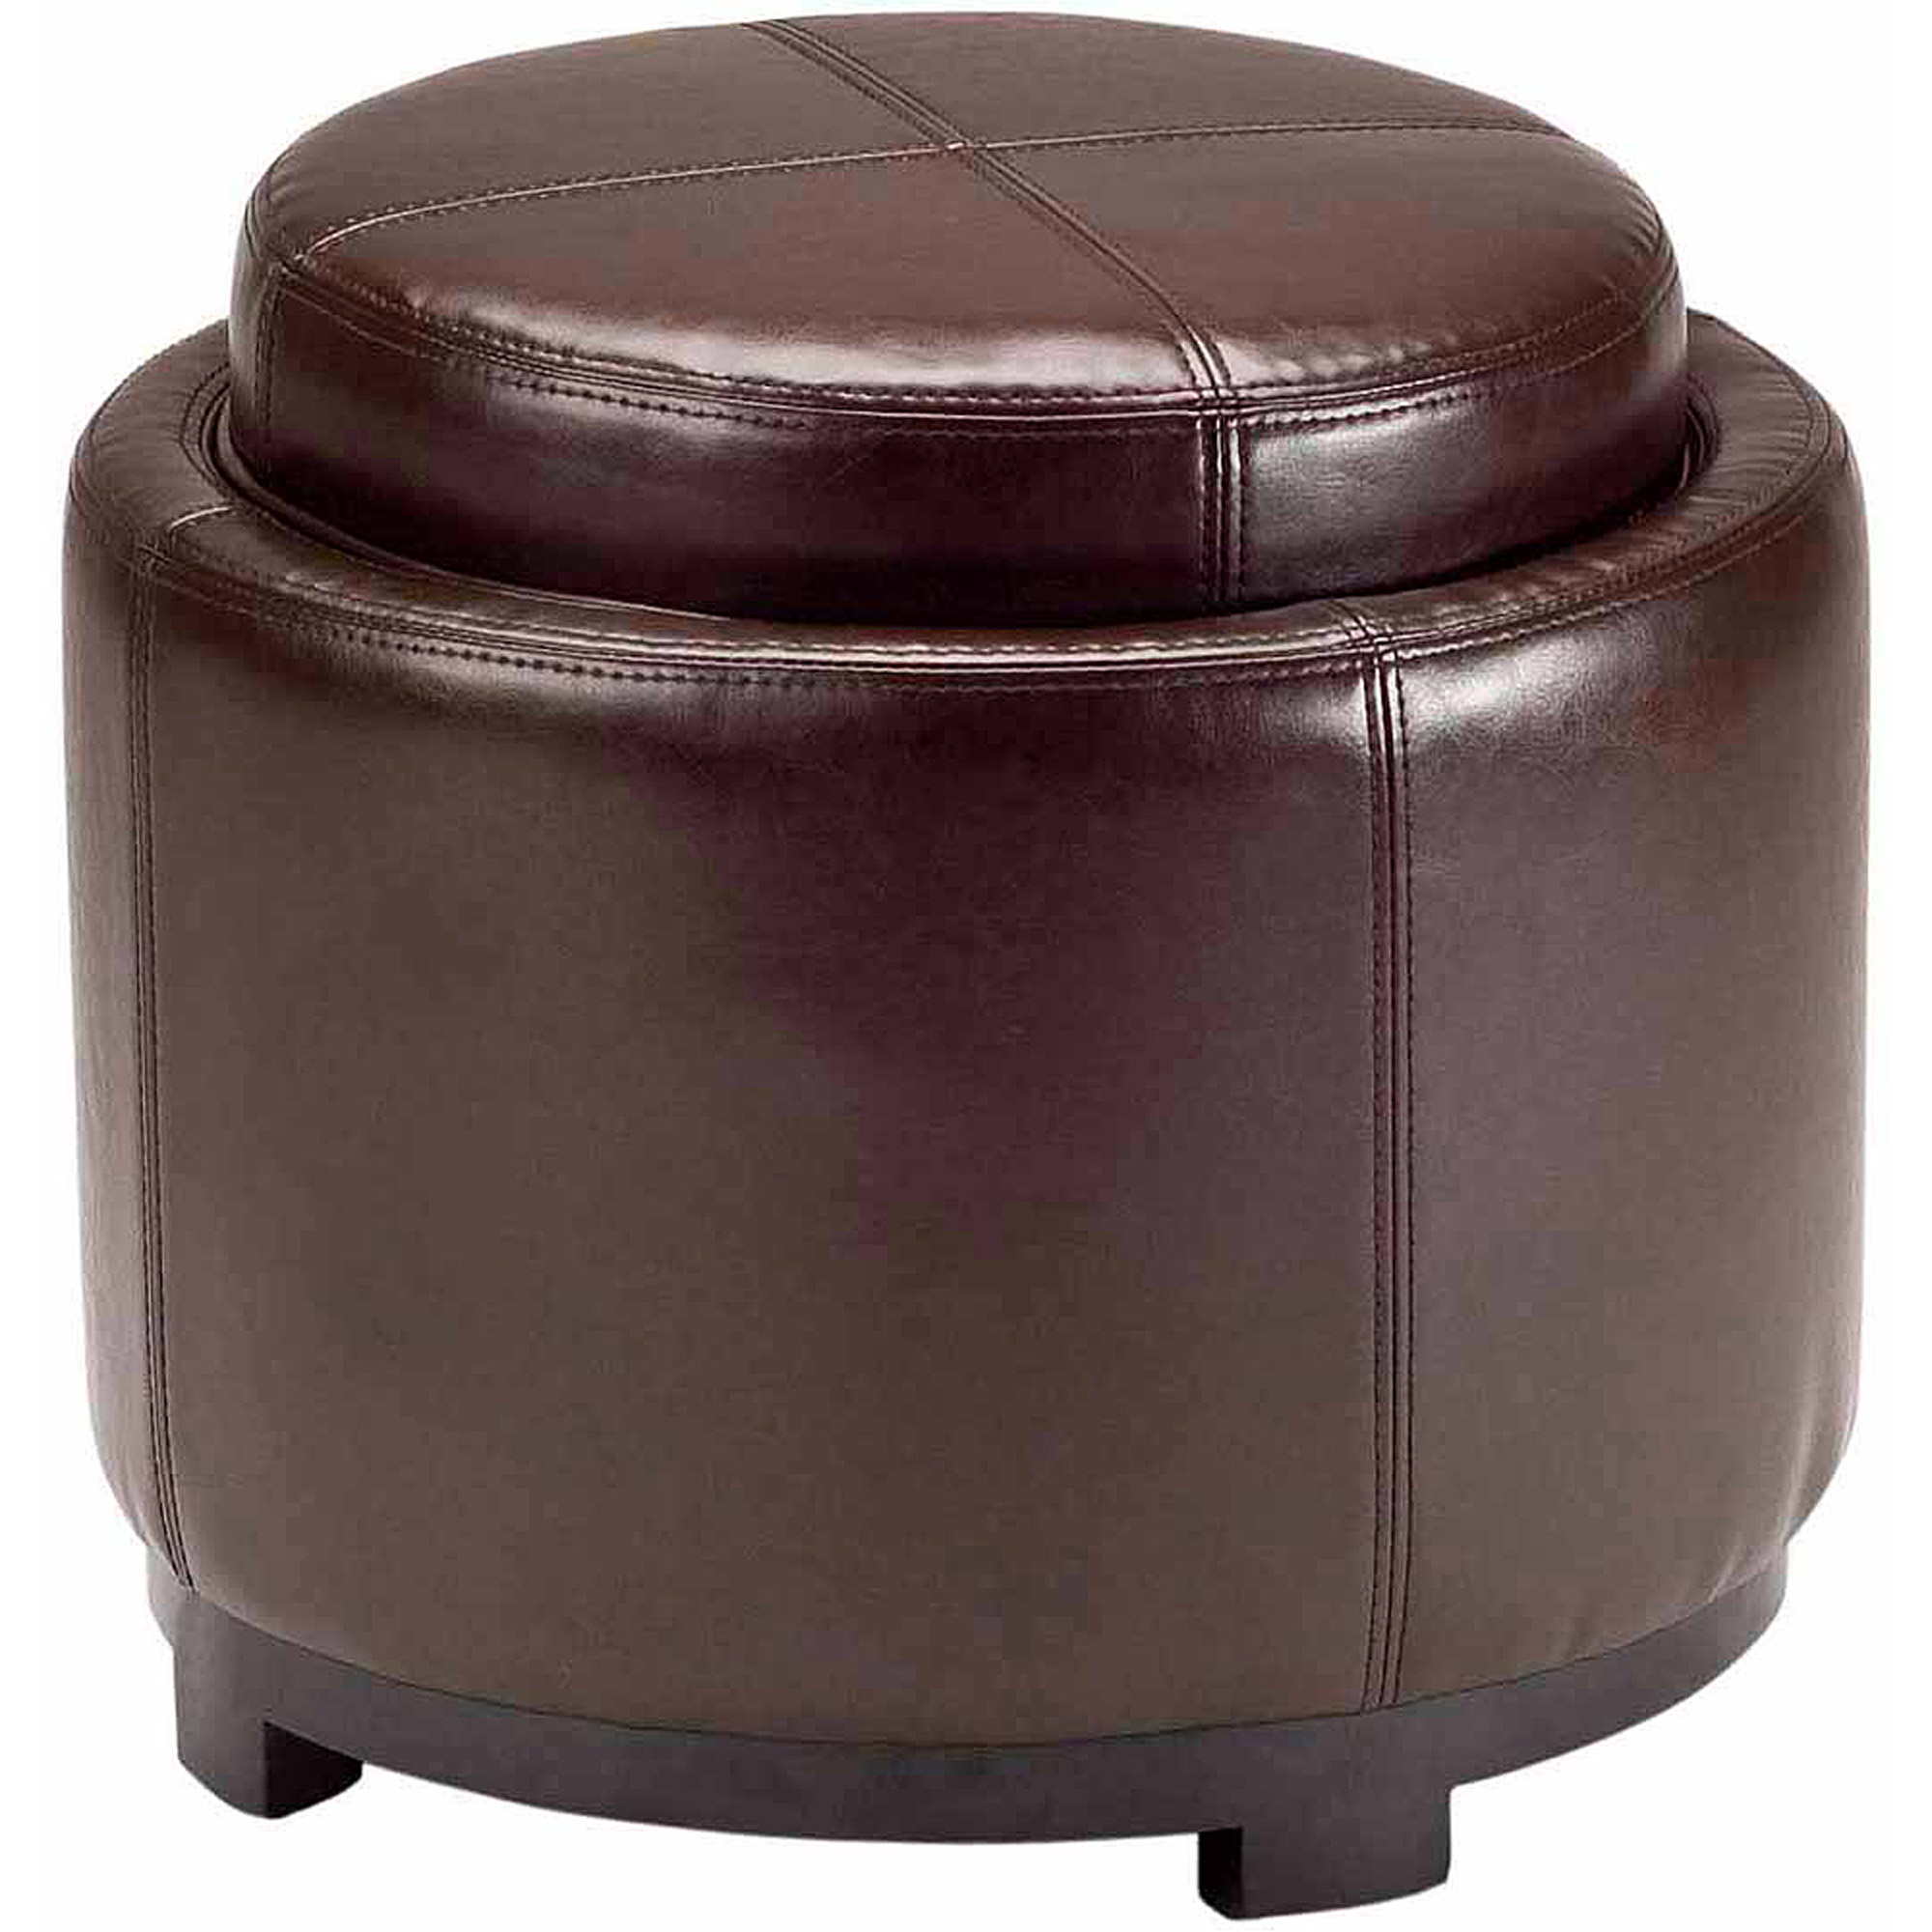 Safavieh Chelsea Bicast Leather Upholstered Round Tray Ottoman, Multiple Colors